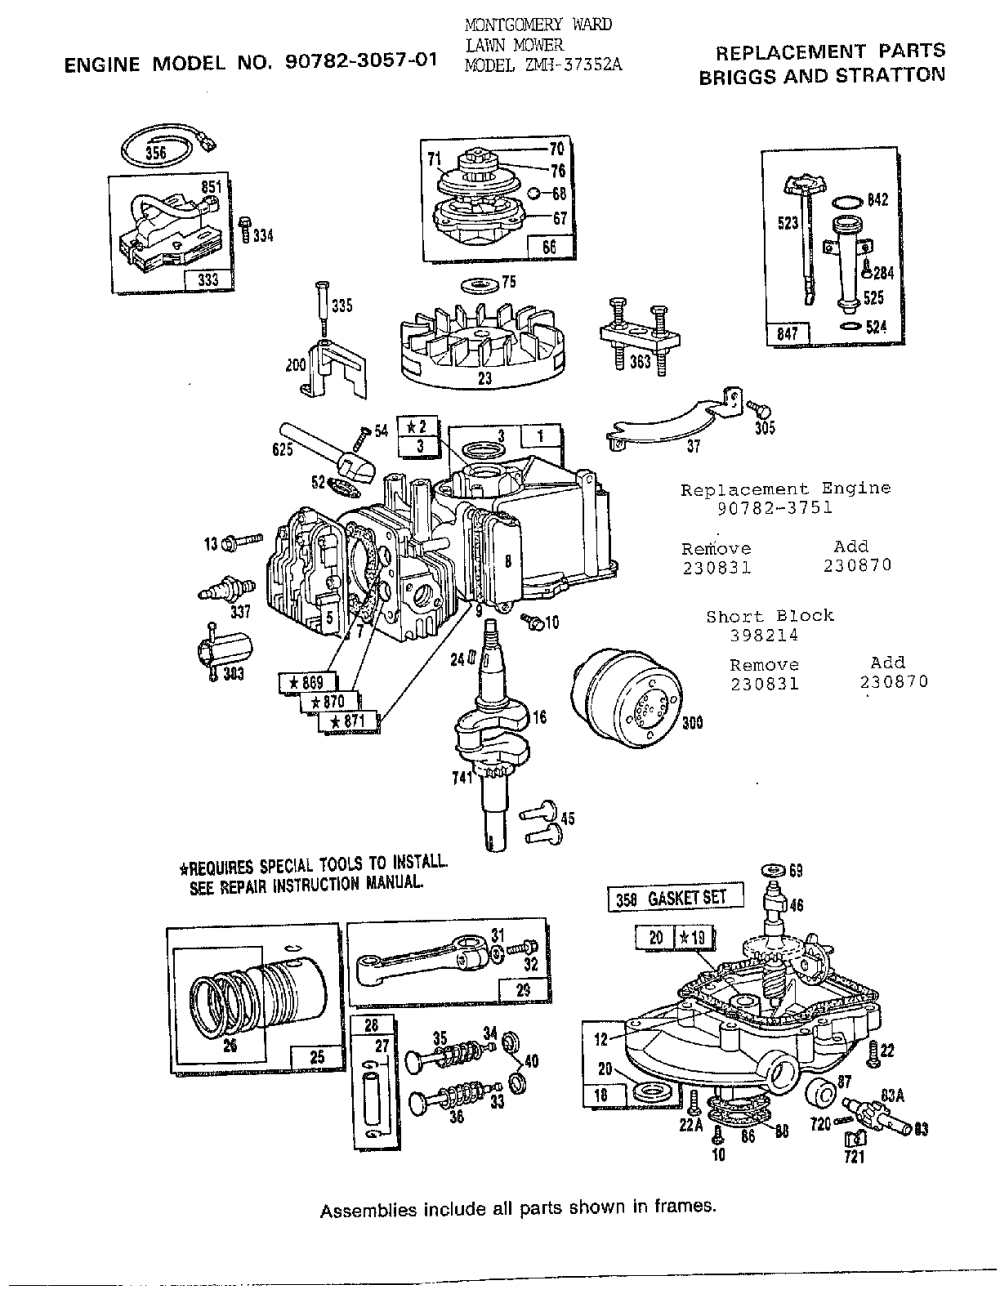 medium resolution of murray lawn mower engine diagram wiring diagram centre looking for murray model 37352a gas walk behind